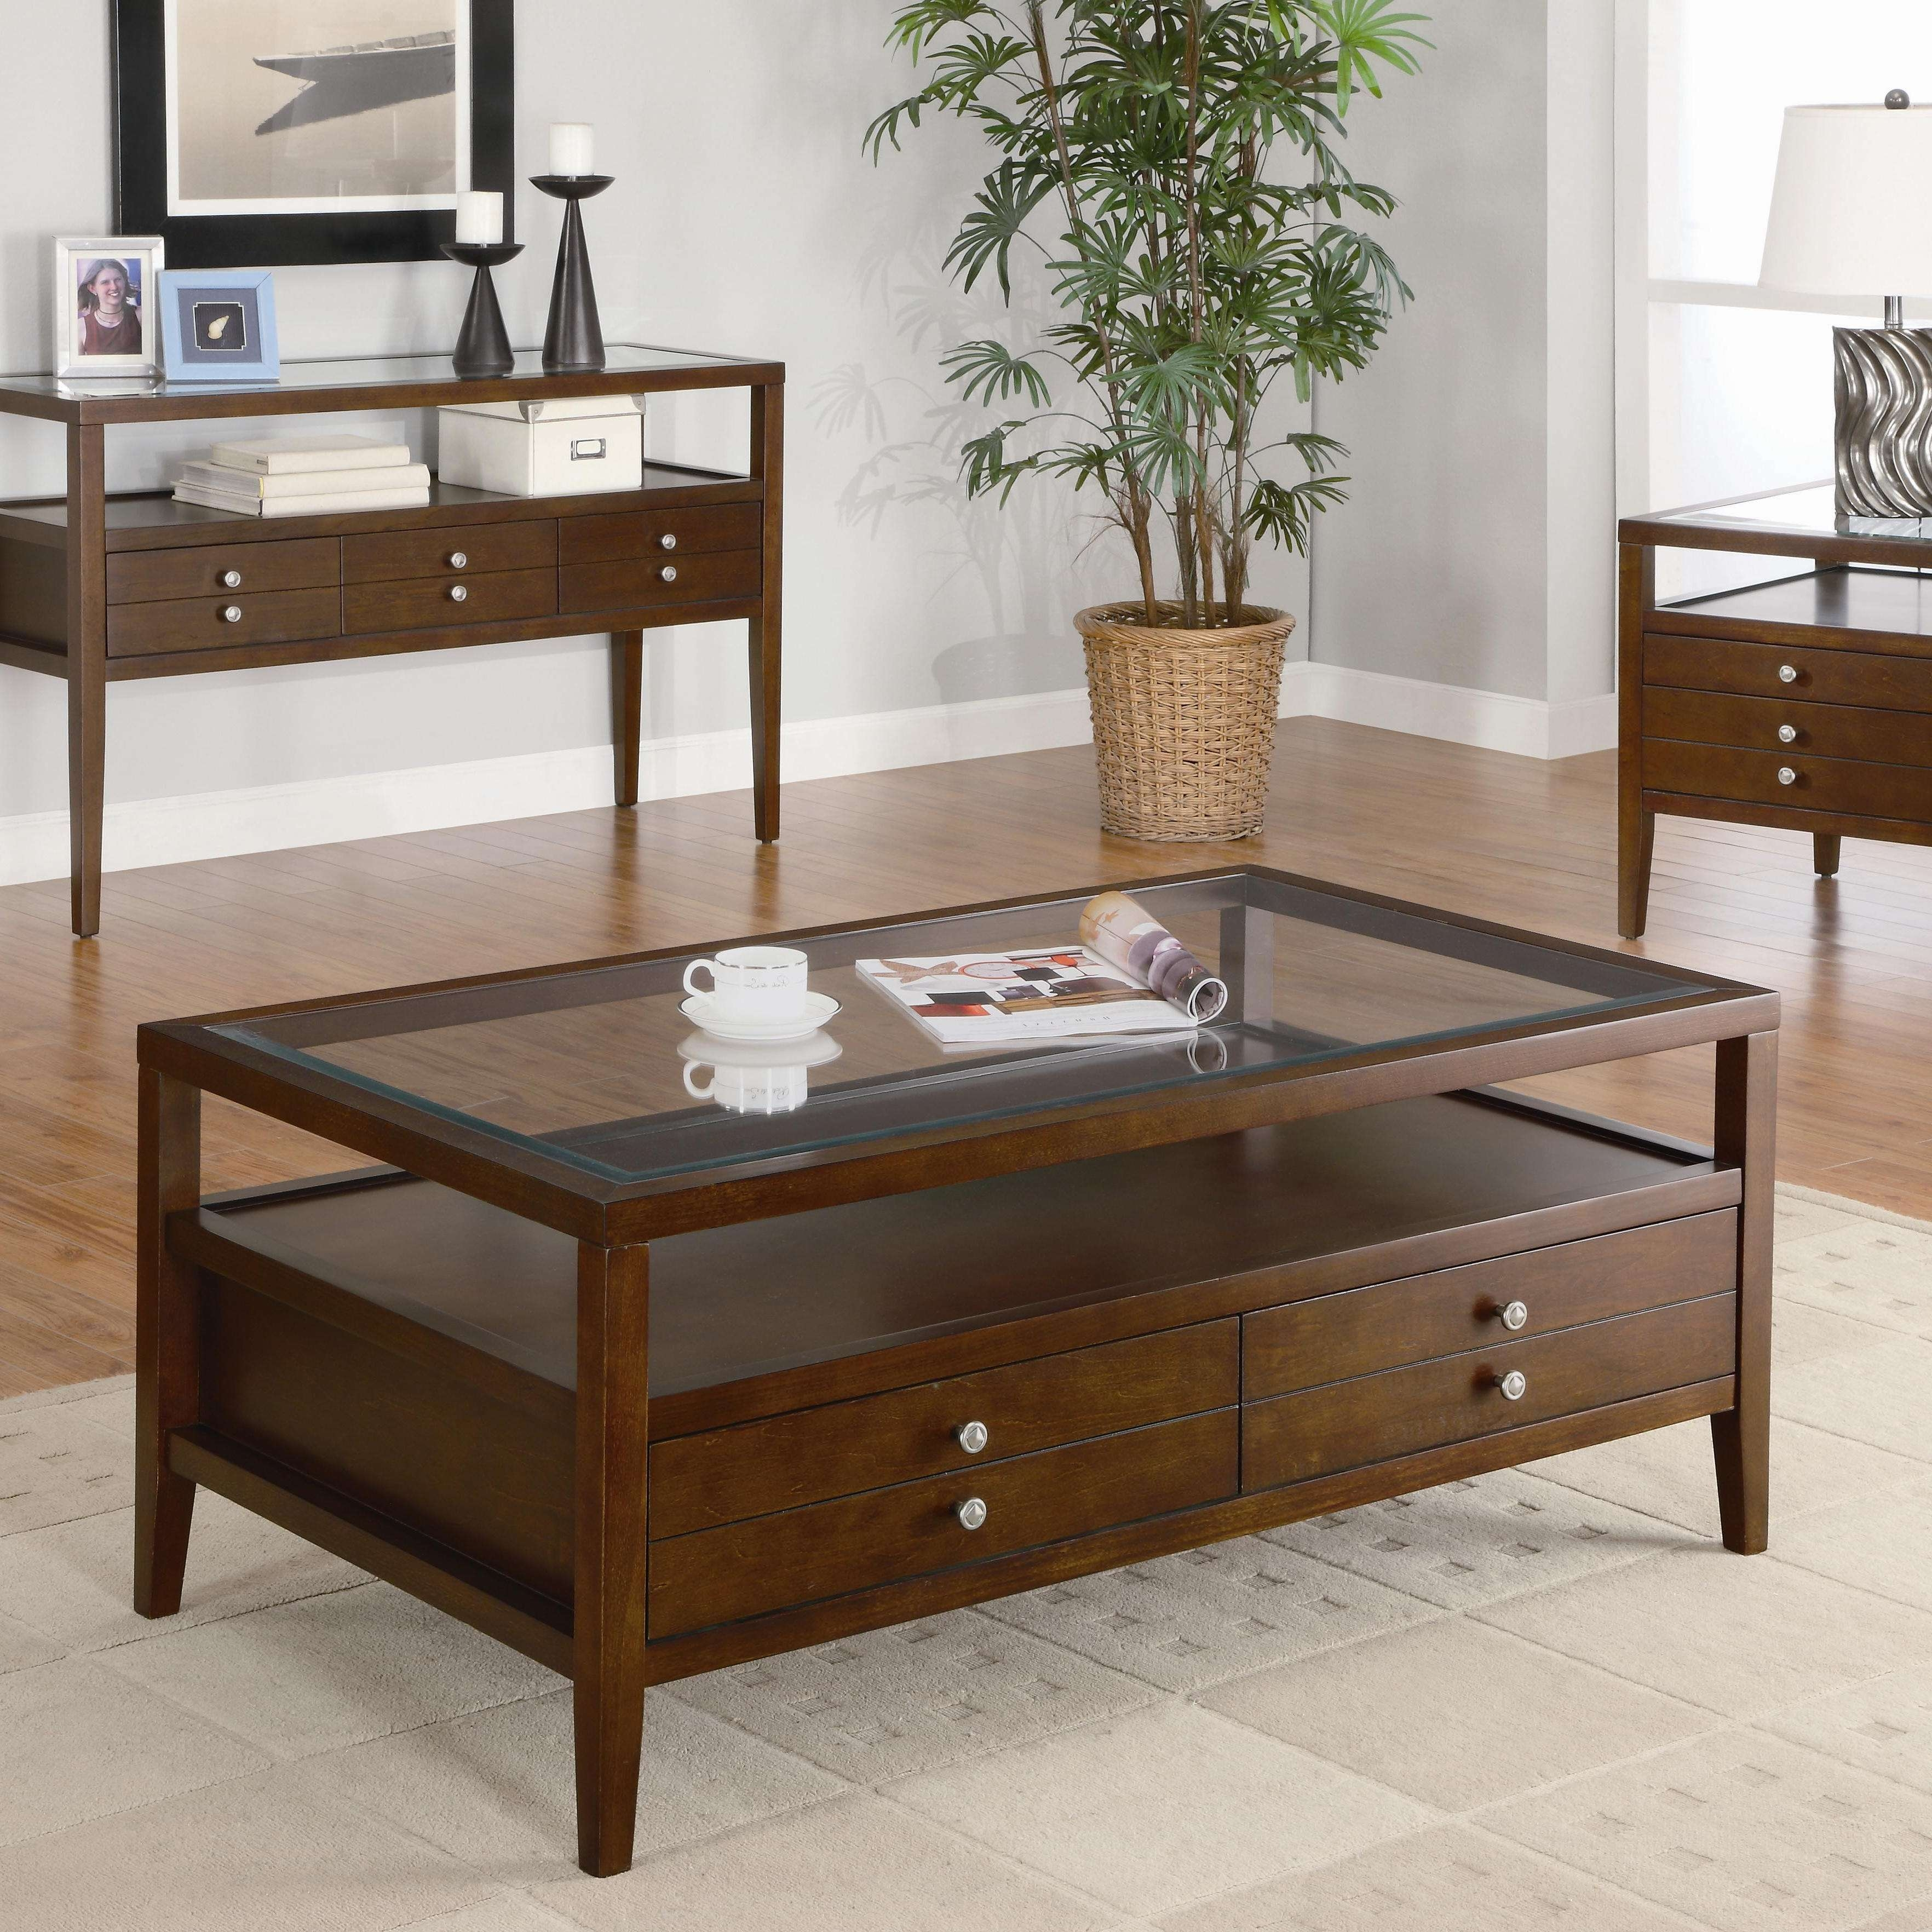 Most Popular Glass Top Storage Coffee Tables For Interior : Contemporary Designer Custom Coffee Table With Storage (View 12 of 20)